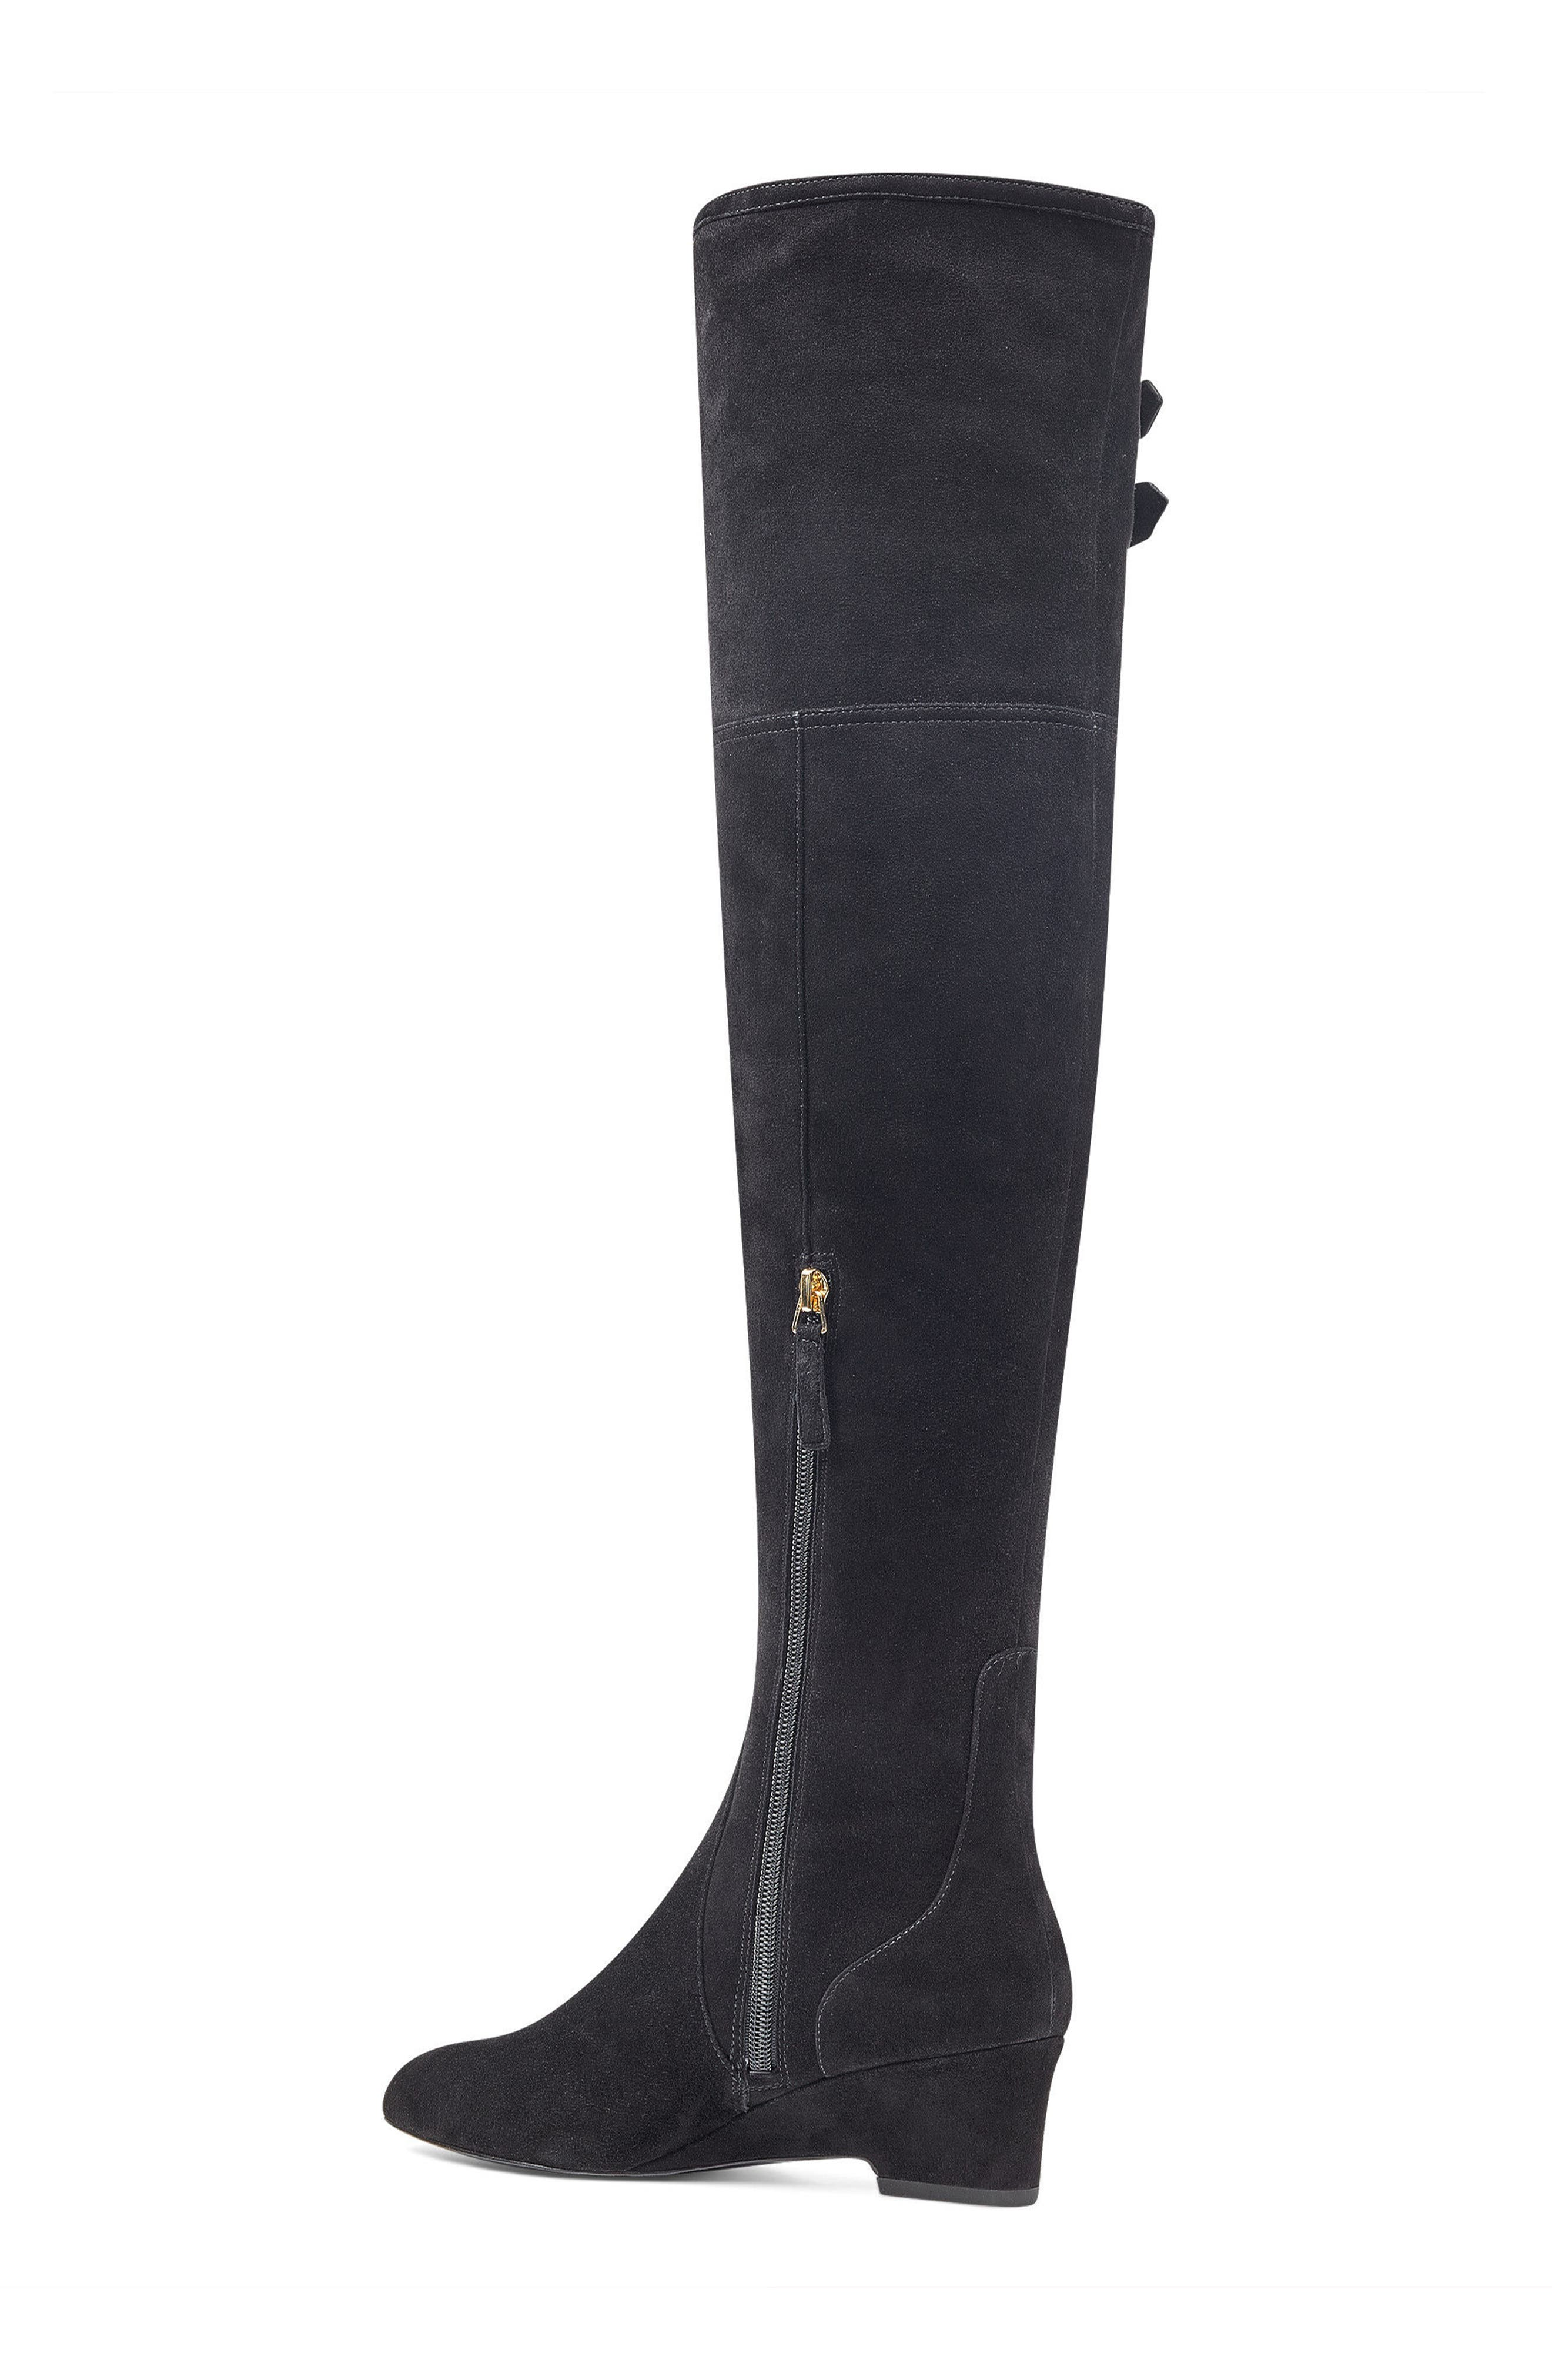 NINE WEST,                             Jaen Over the Knee Boot,                             Alternate thumbnail 2, color,                             001